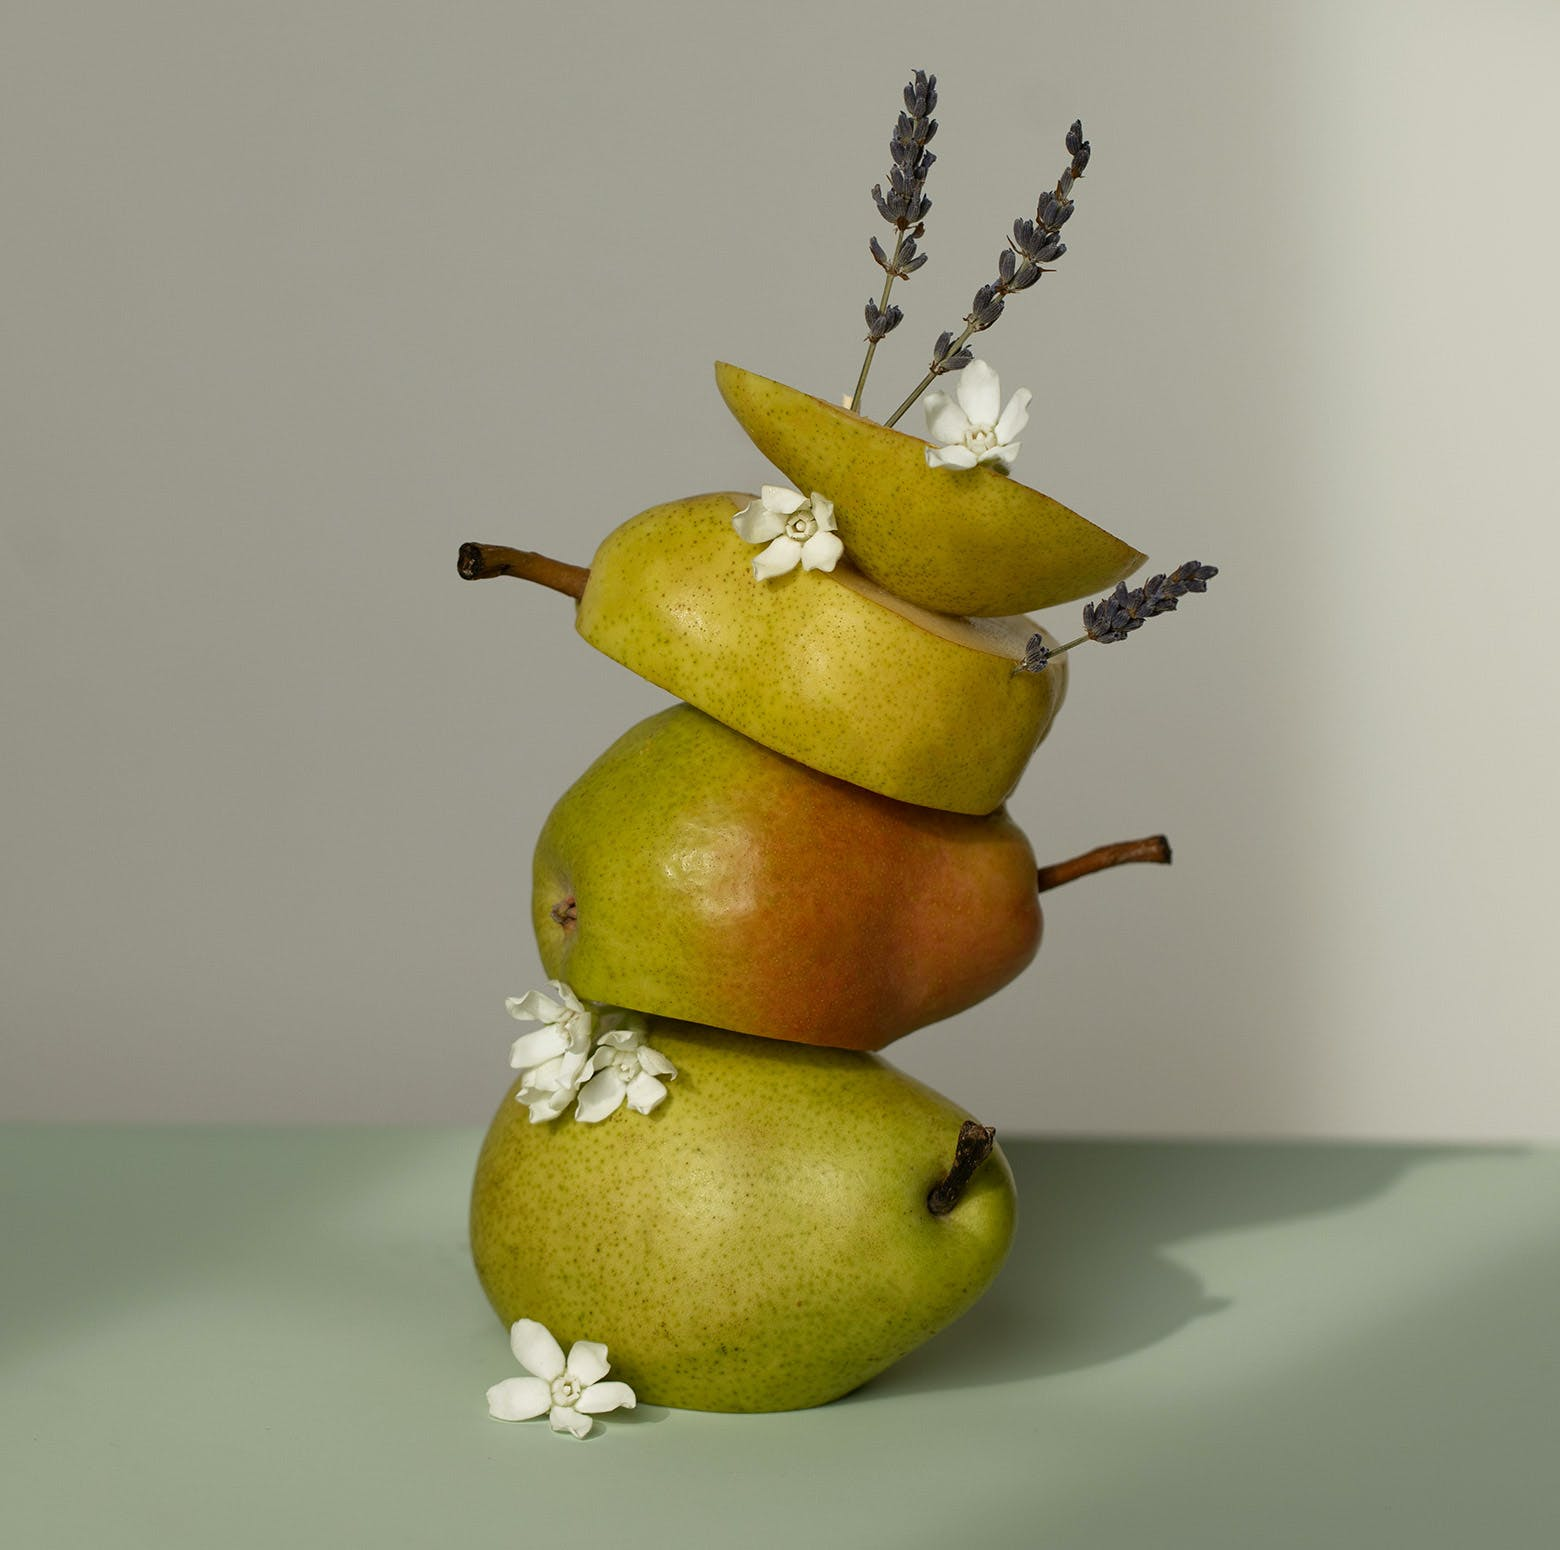 Pears and flowers stacked